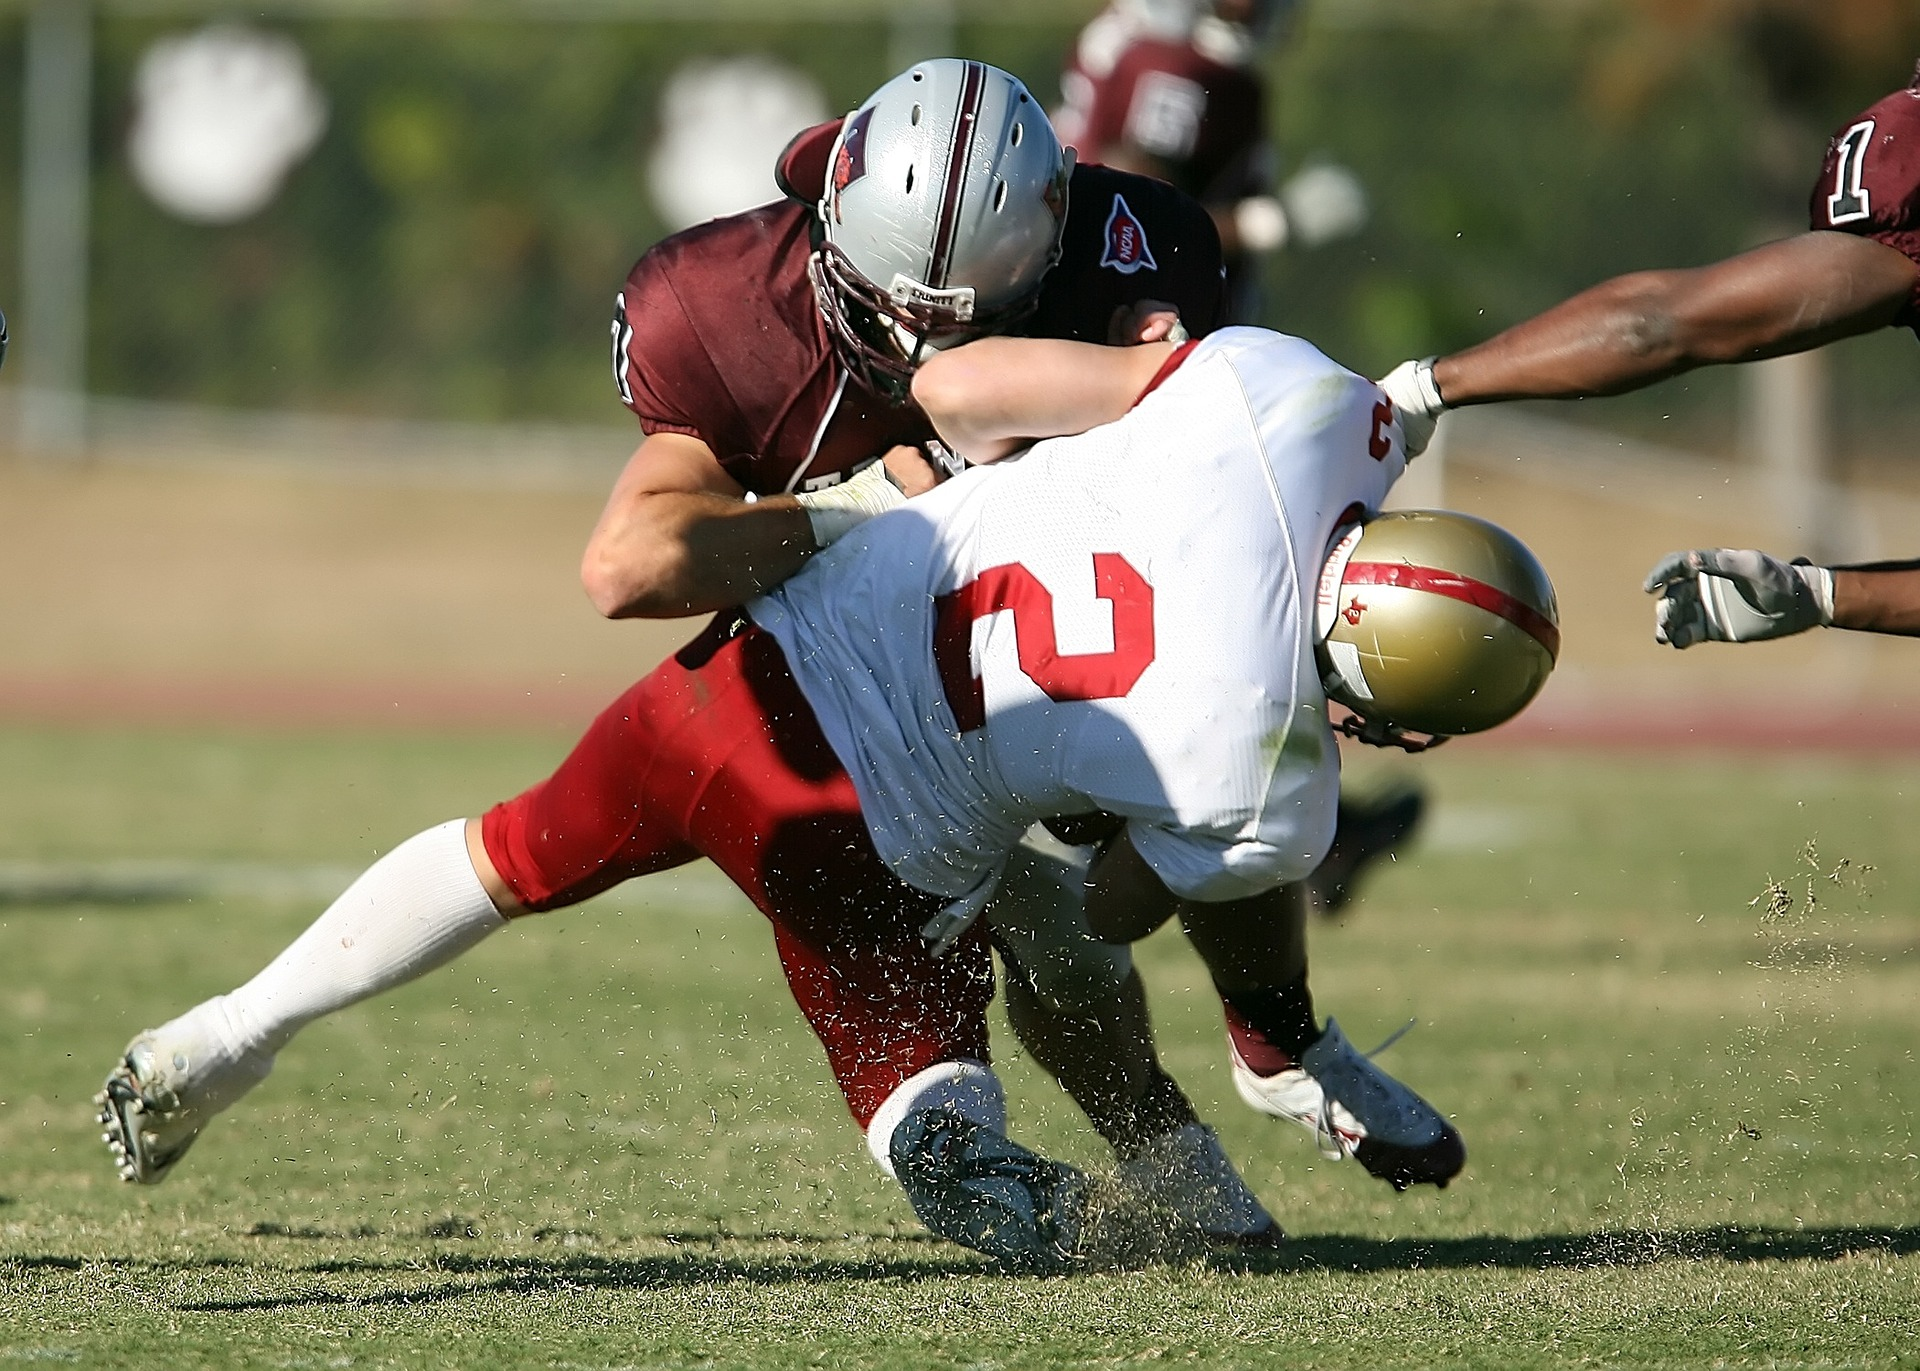 PLAN Protocol for football concussions at Oregon Regenerative Medicine